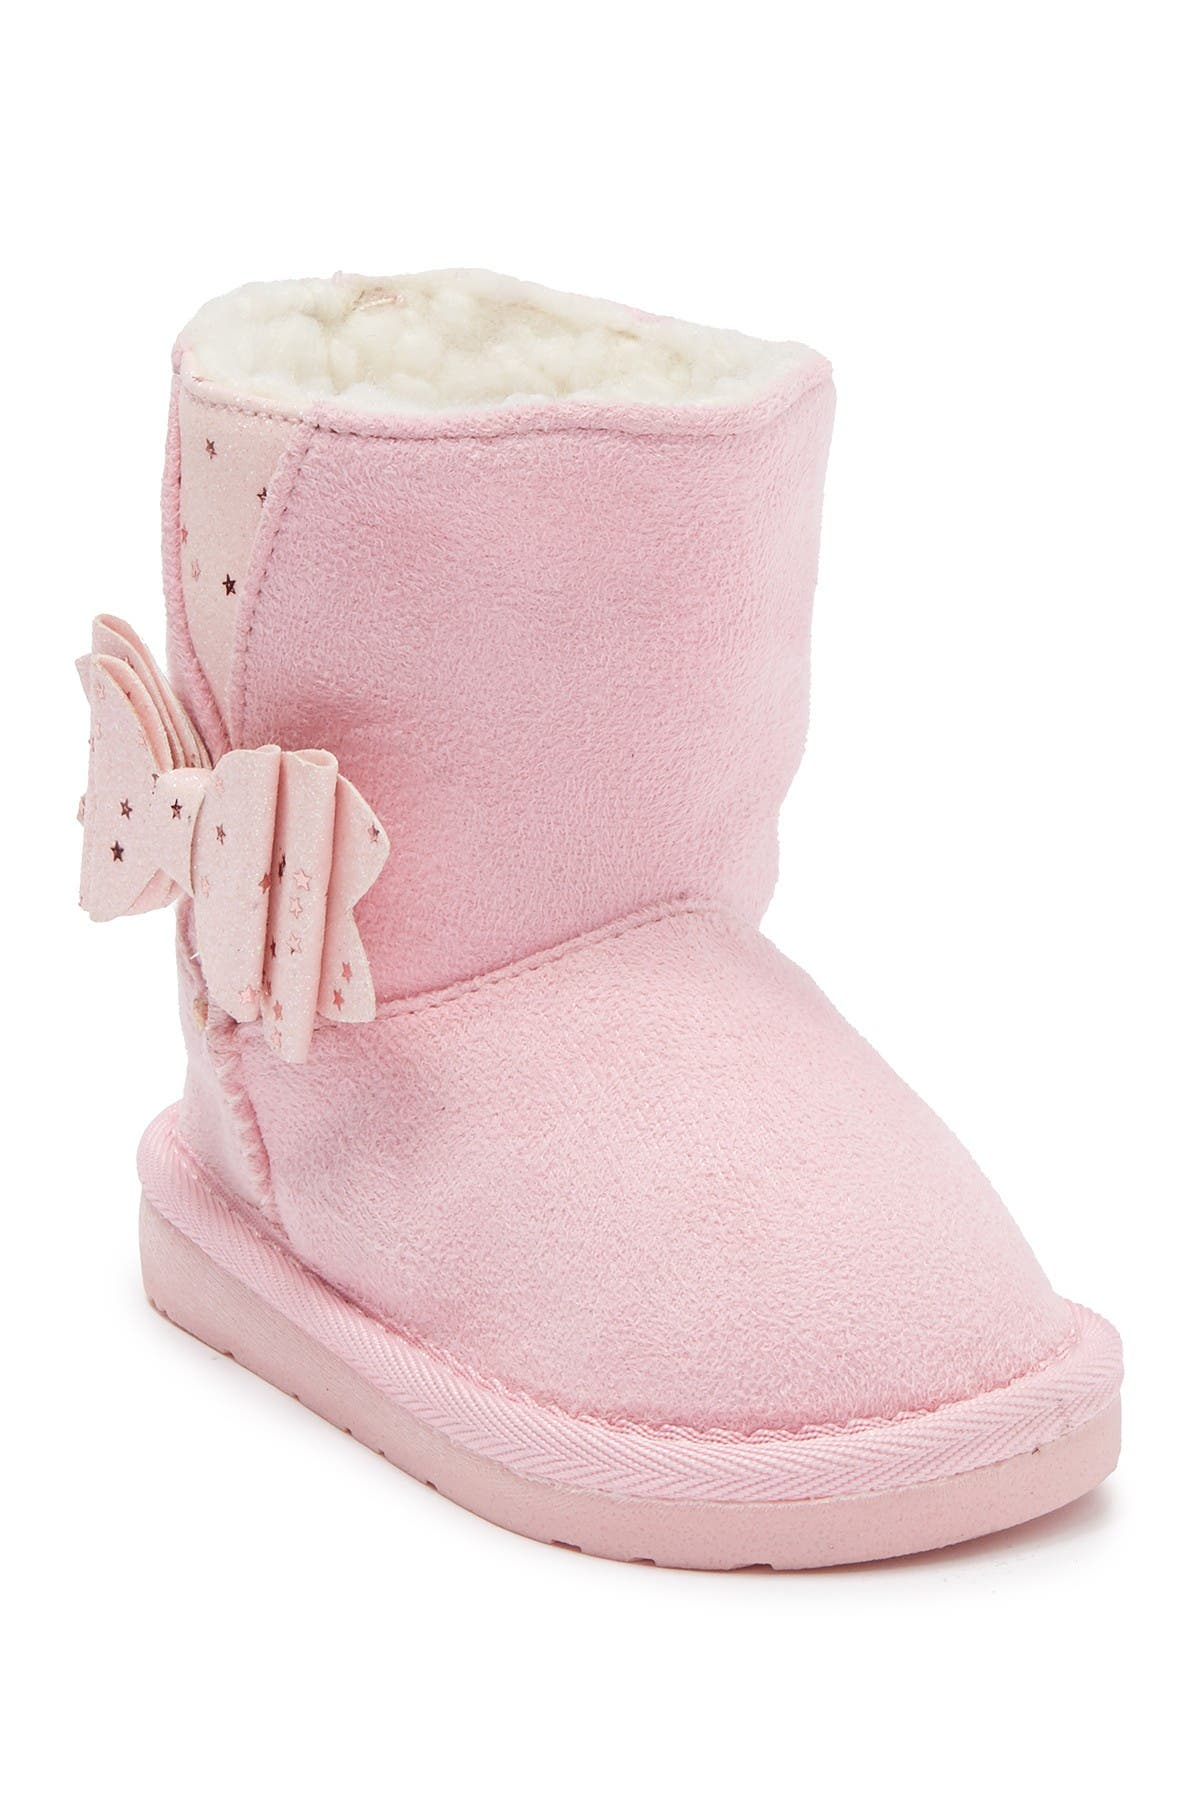 Image of bebe Faux Fur Lined Winter Boot